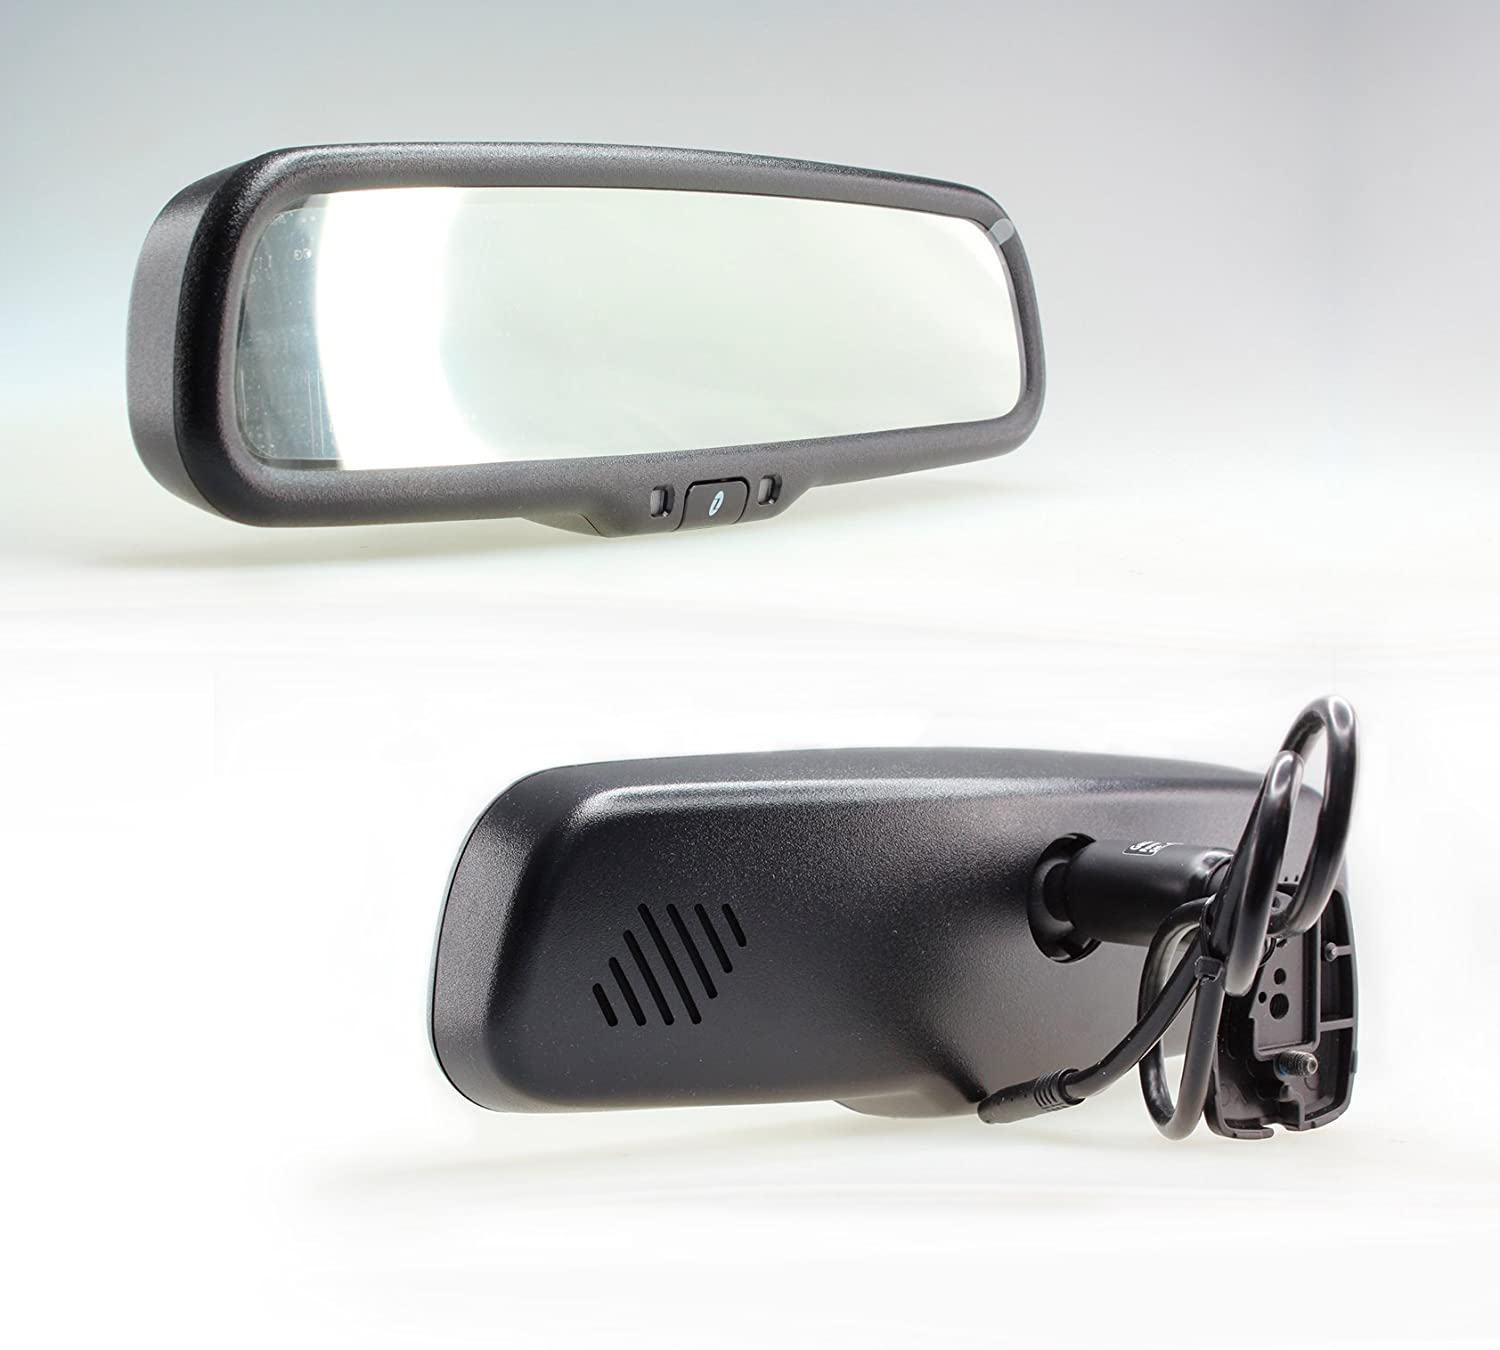 Gazer MU500 Car Rear View Mirror 4.3 Display Brightness Adjustment and Built-in Universal Mount with Removable Pads Gazer Limited